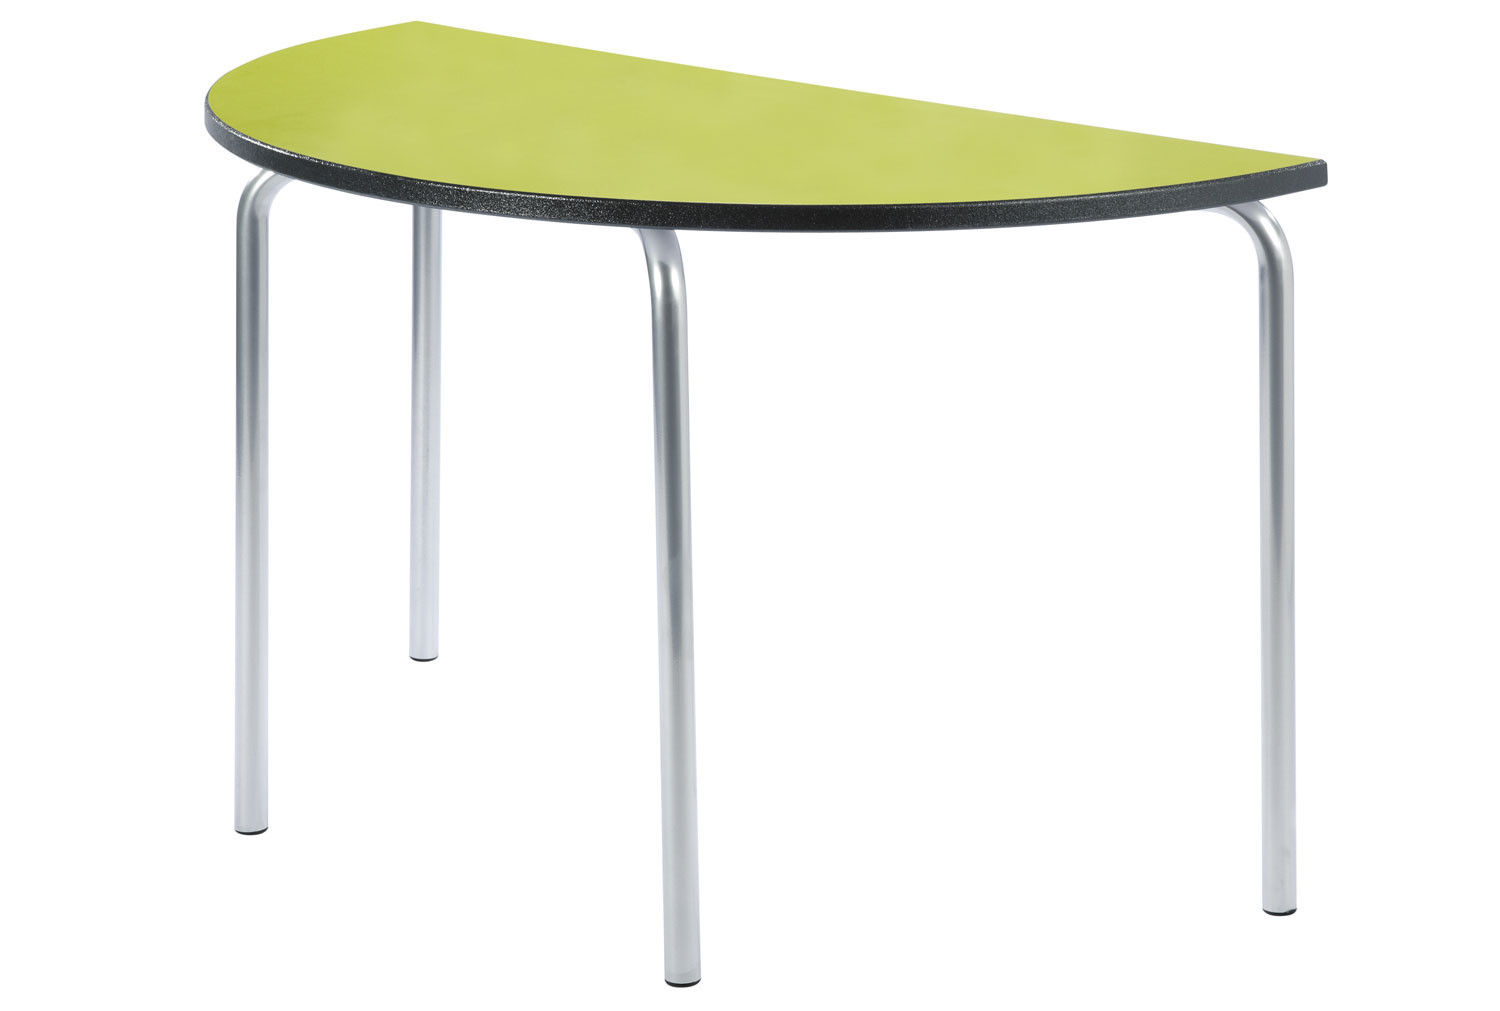 Equation Semi Circular Classroom Tables 8-11 Years